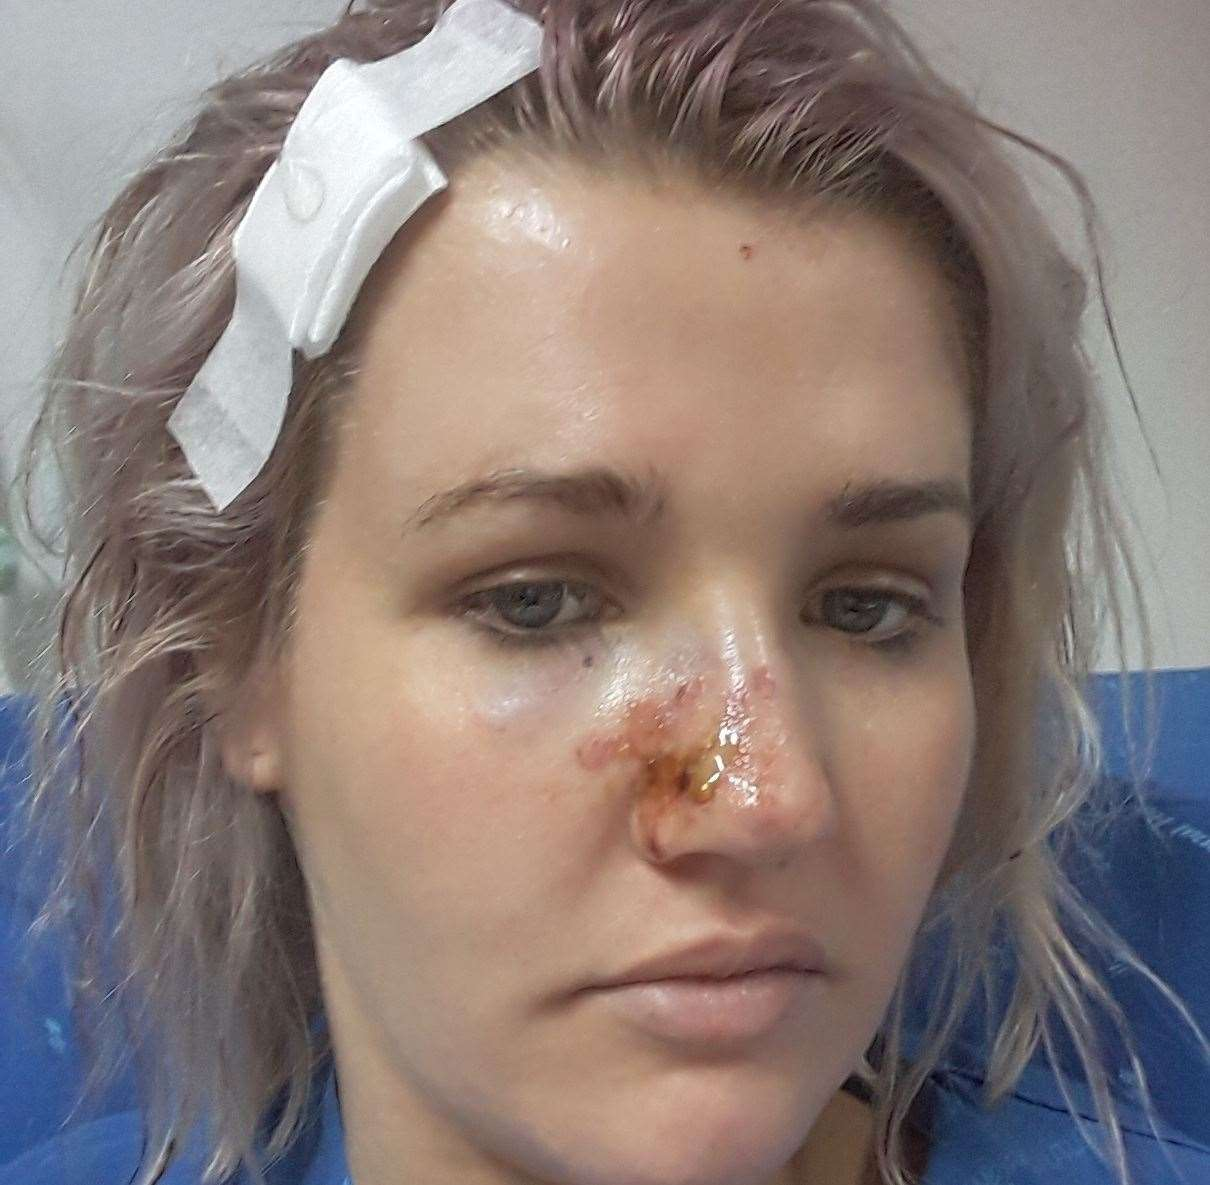 Abi Harrison was left battered and bruised after a motorbike crash in Thailand